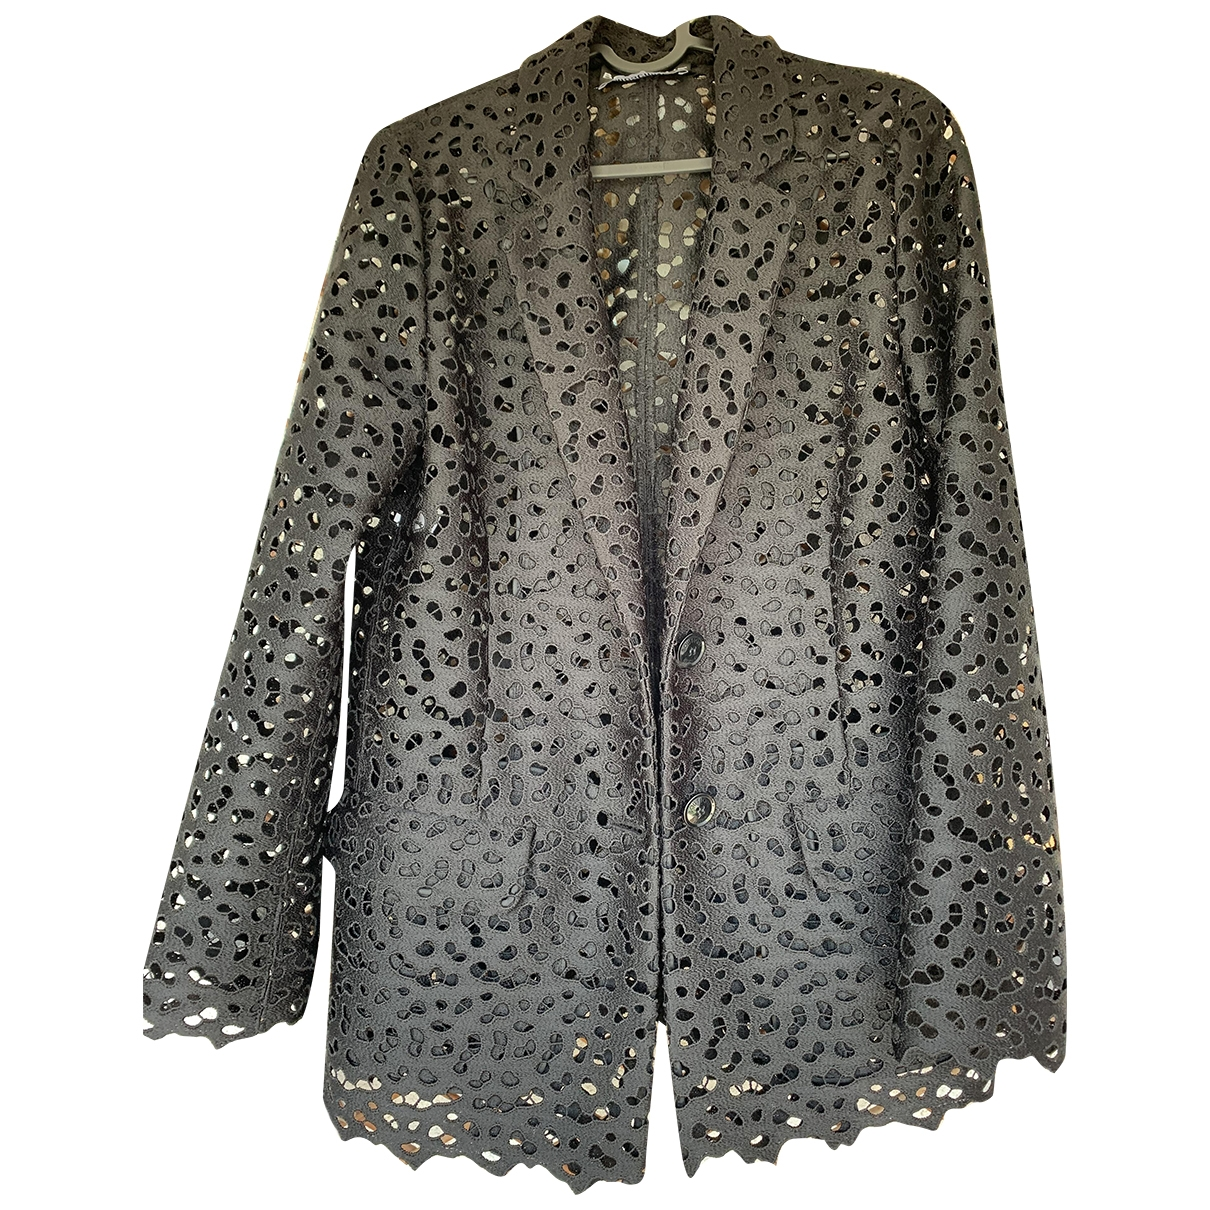 Moschino \N Black jacket for Women 40 IT